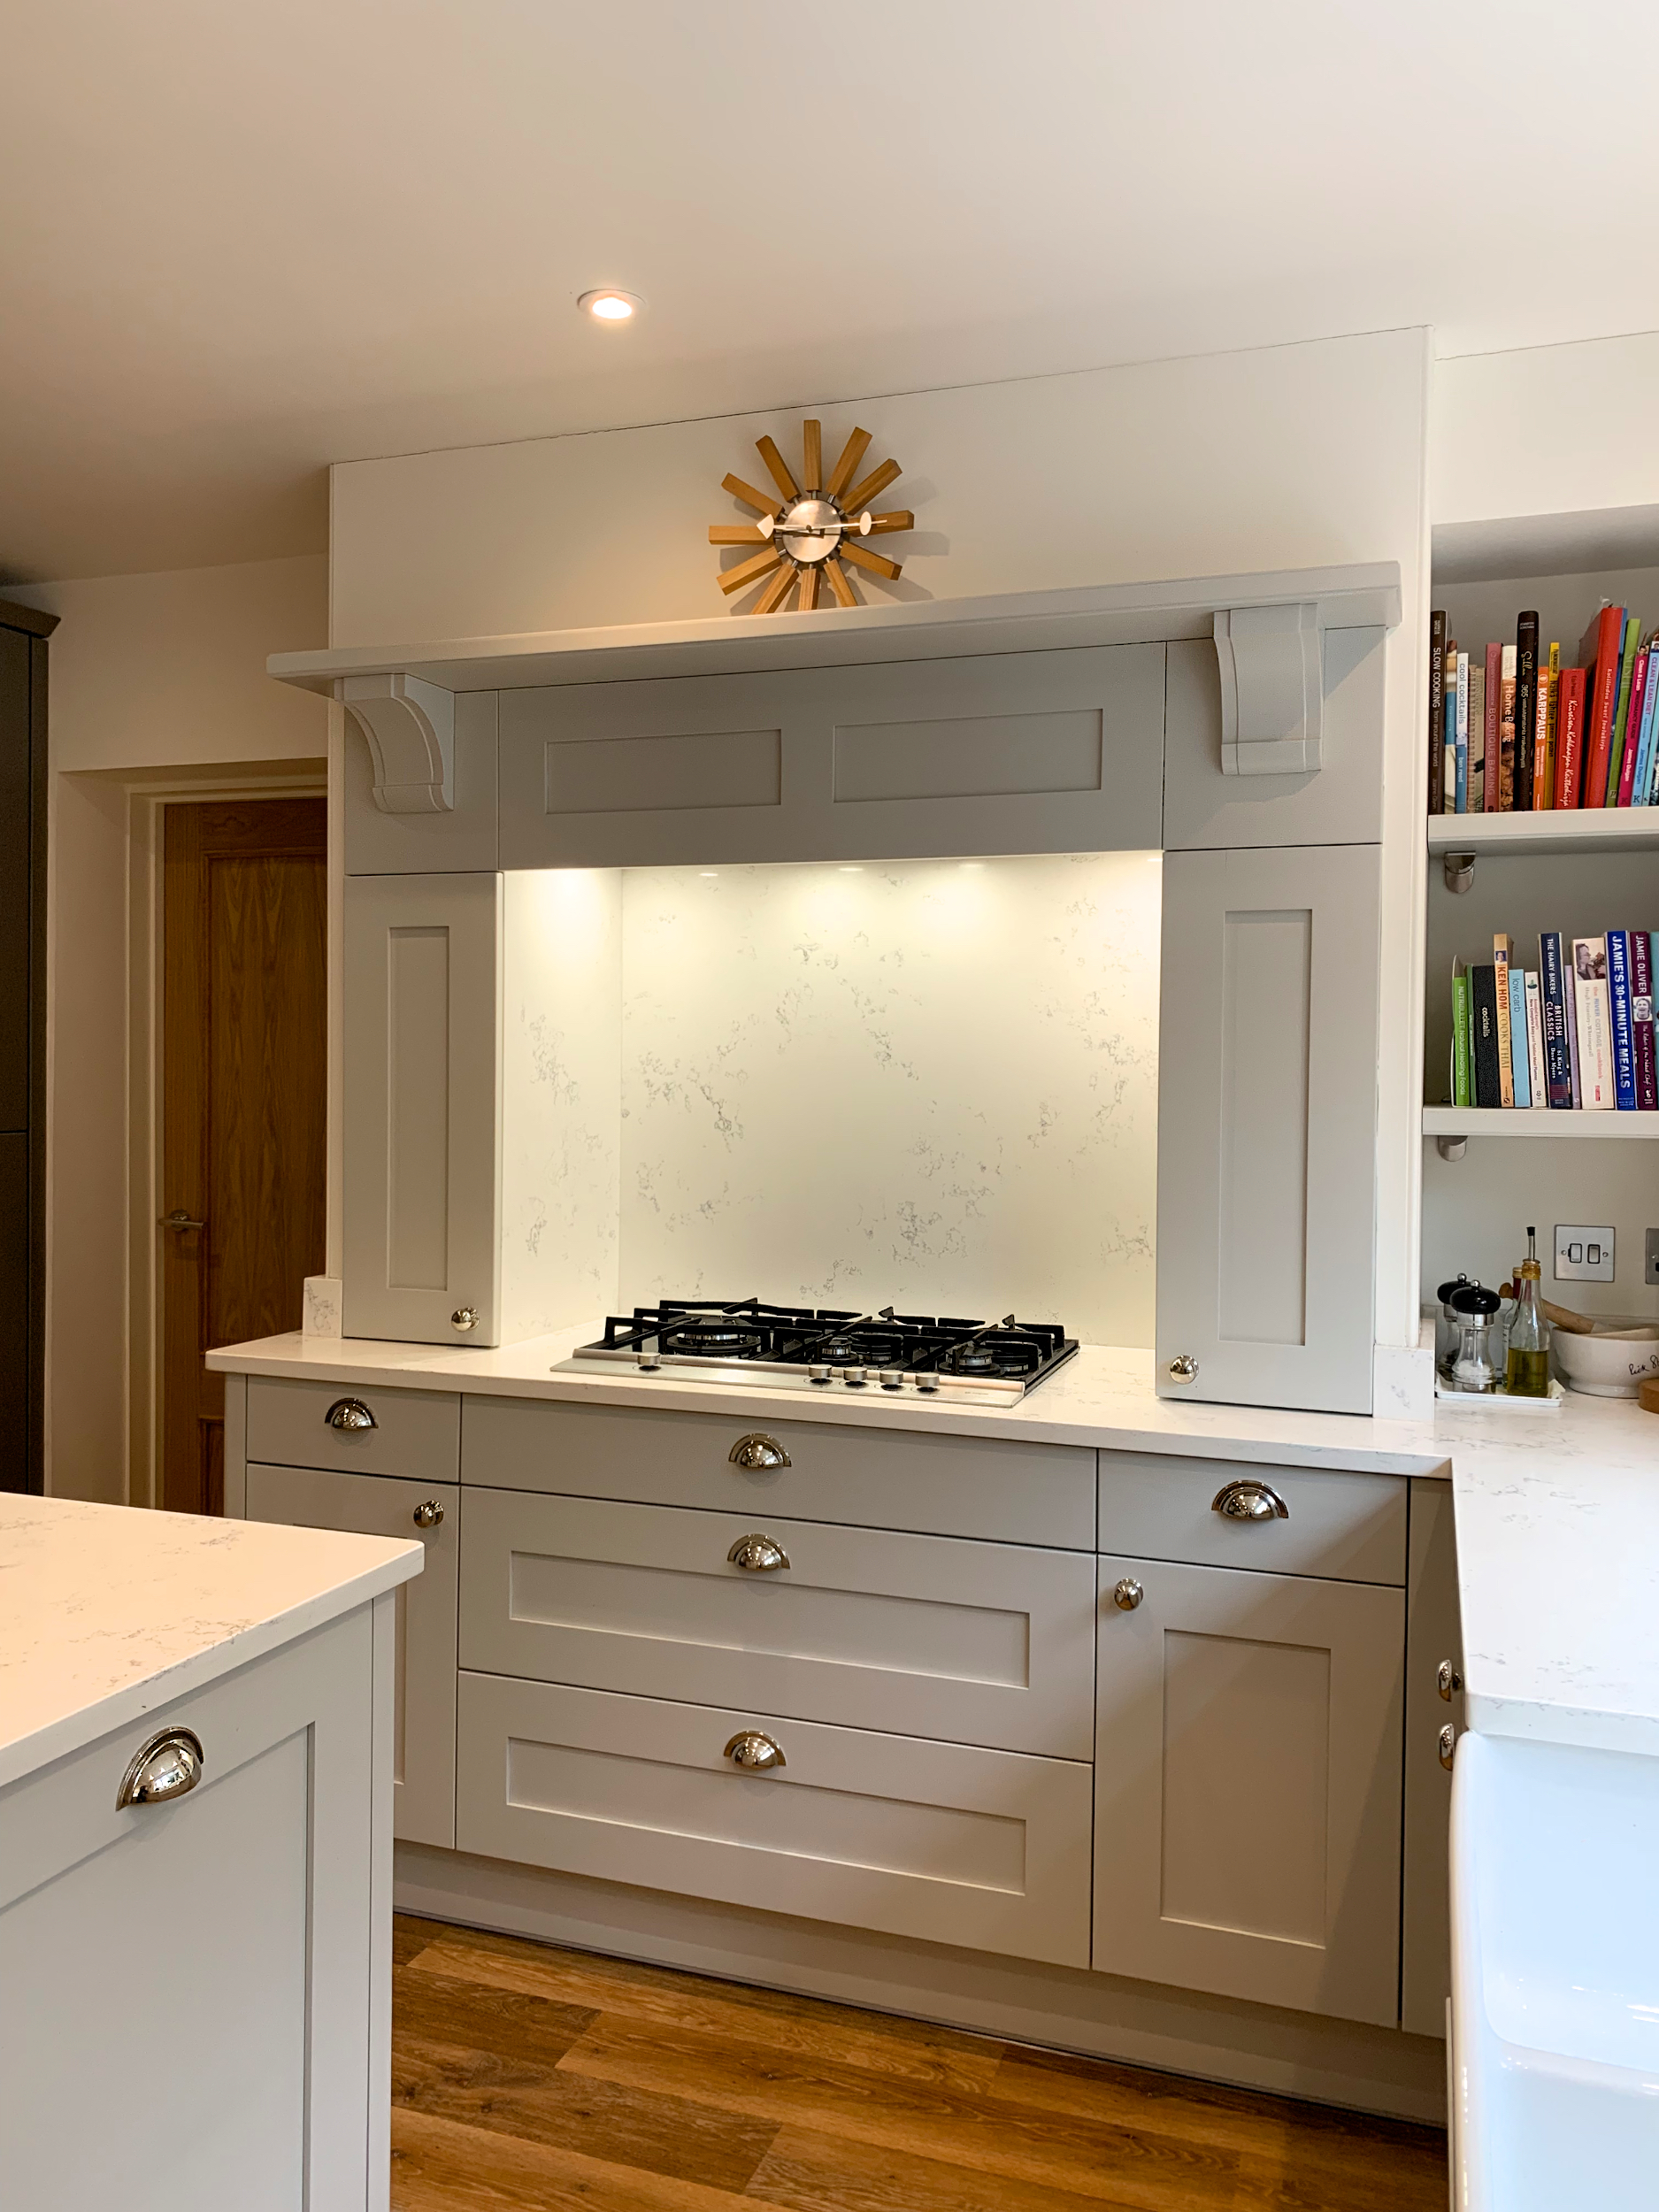 Painted Shaker Kitchen in Fleet 1379.jpg